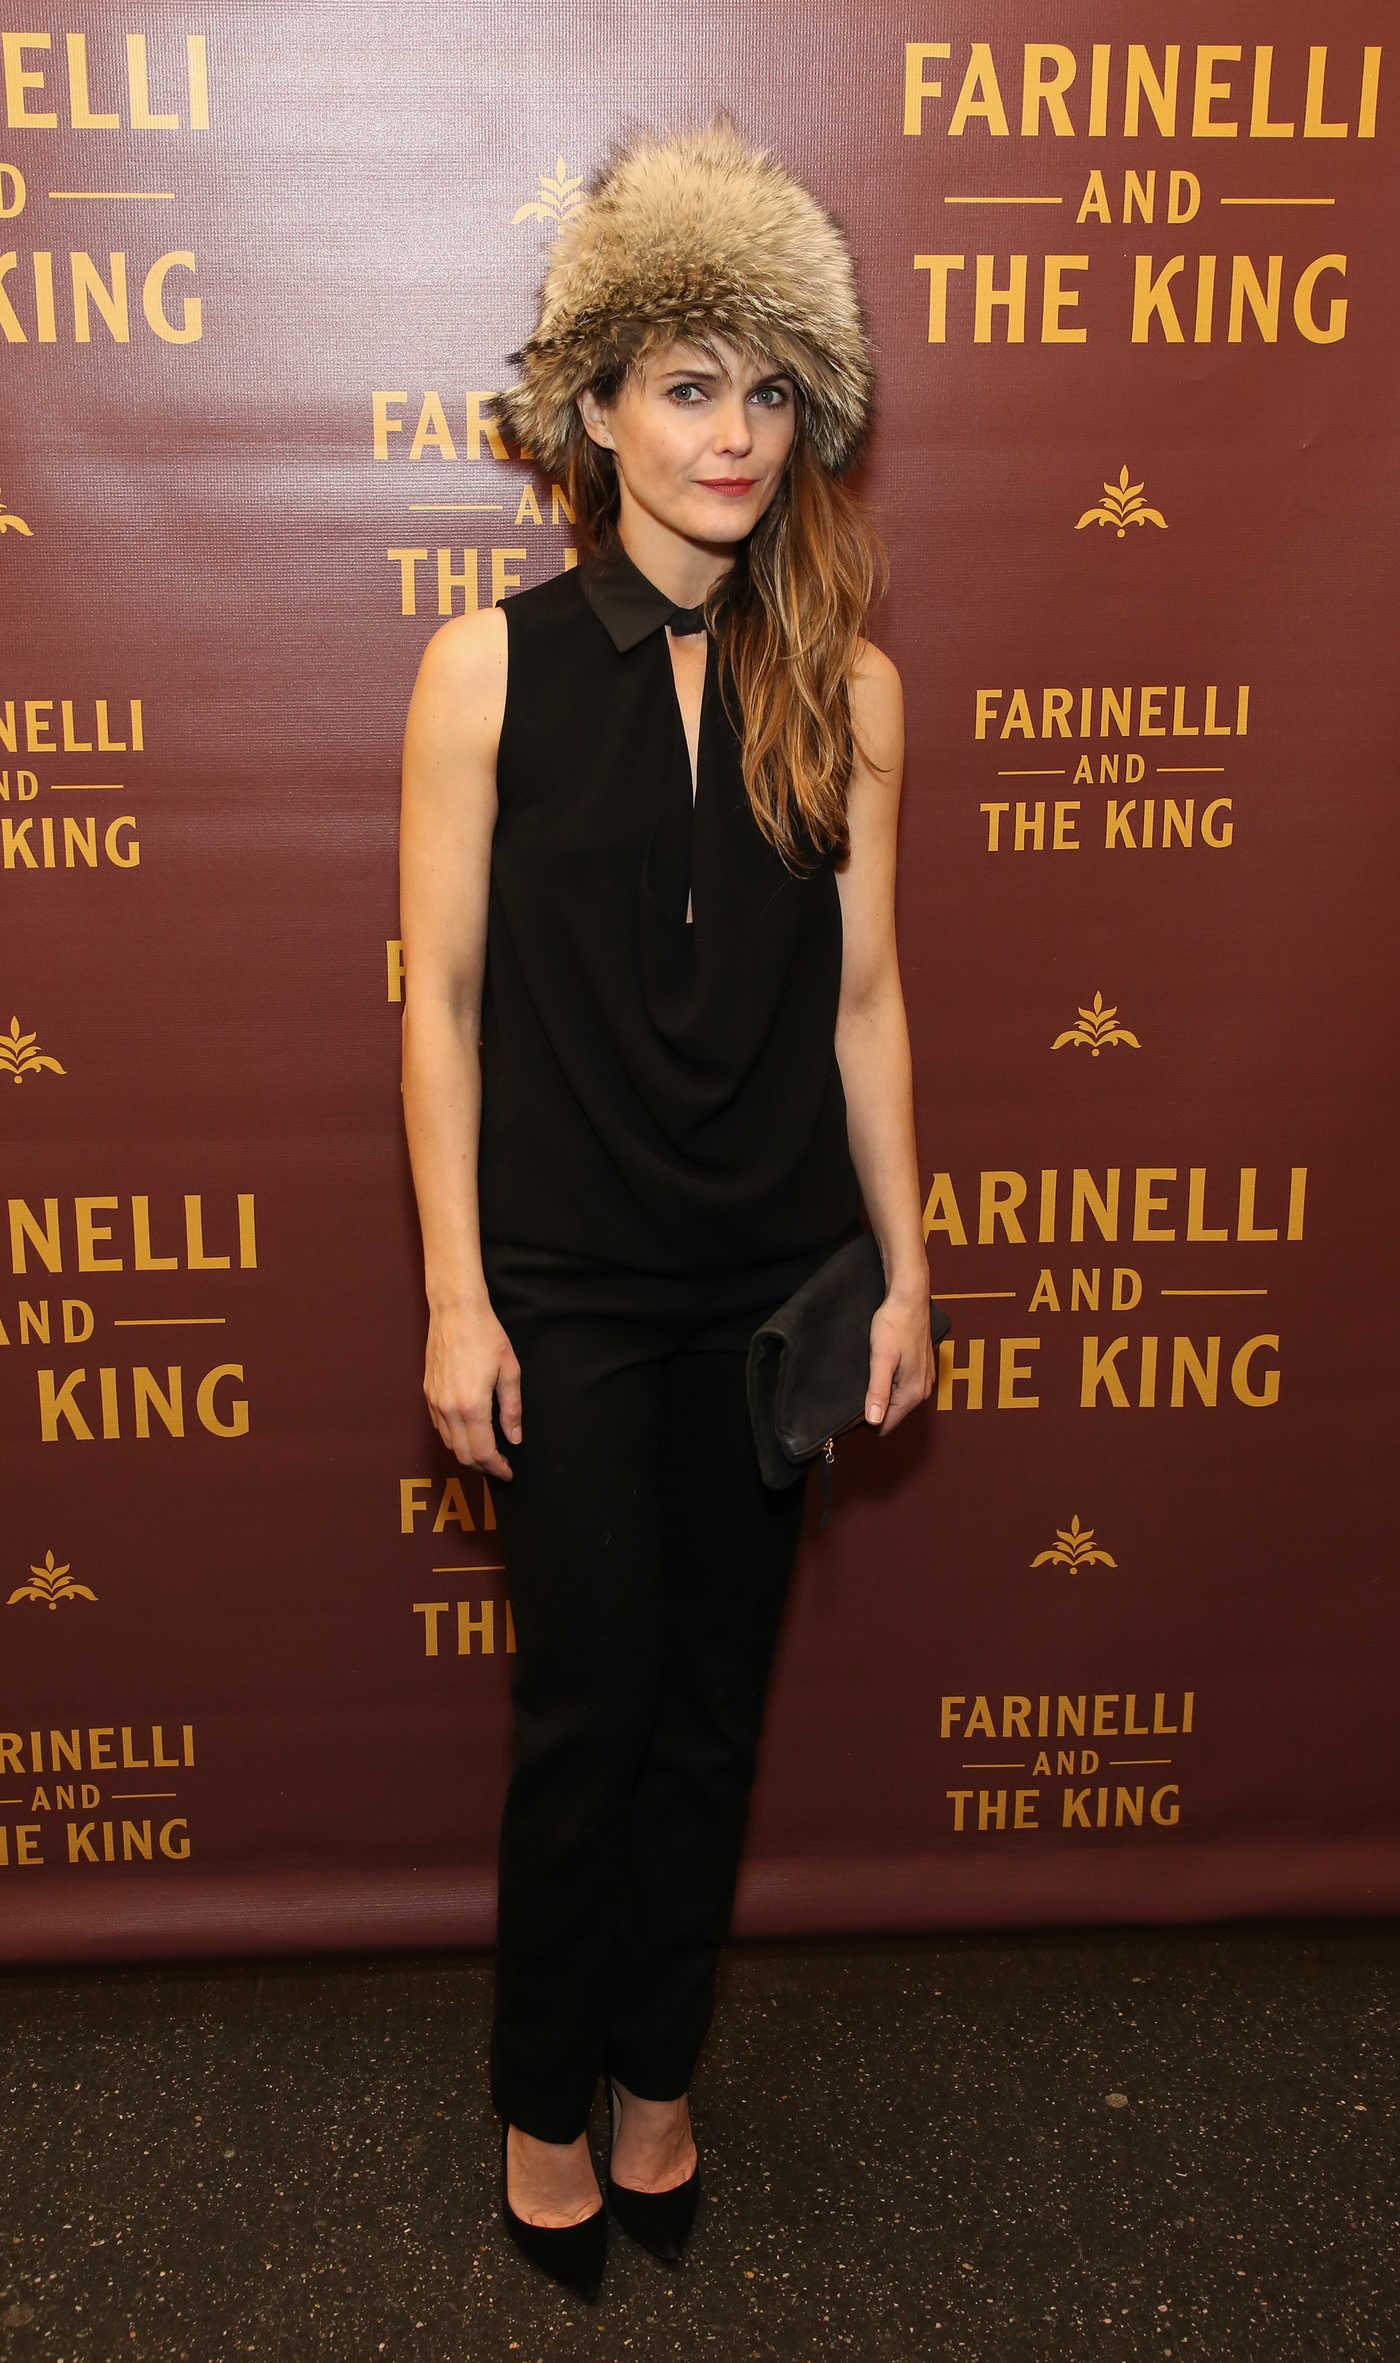 Keri Russell at Broadway Opening Night Performance of Farinelli and the King with Matthew Rhys in NYC 12/17/2017